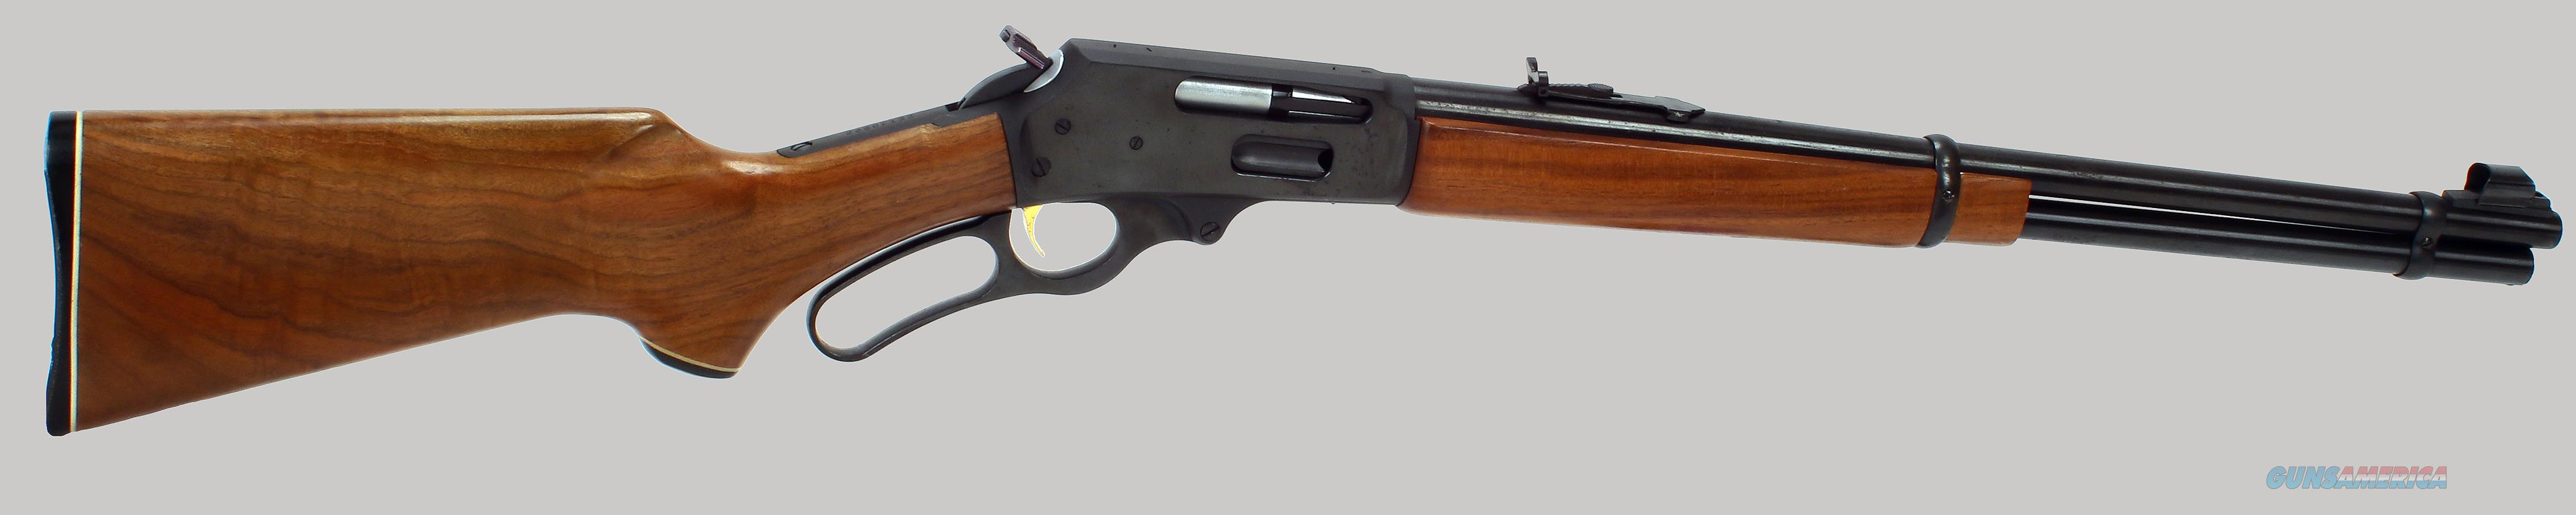 Marlin 30-30 Lever Action Model 336 Rifle  Guns > Rifles > Marlin Rifles > Modern > Lever Action